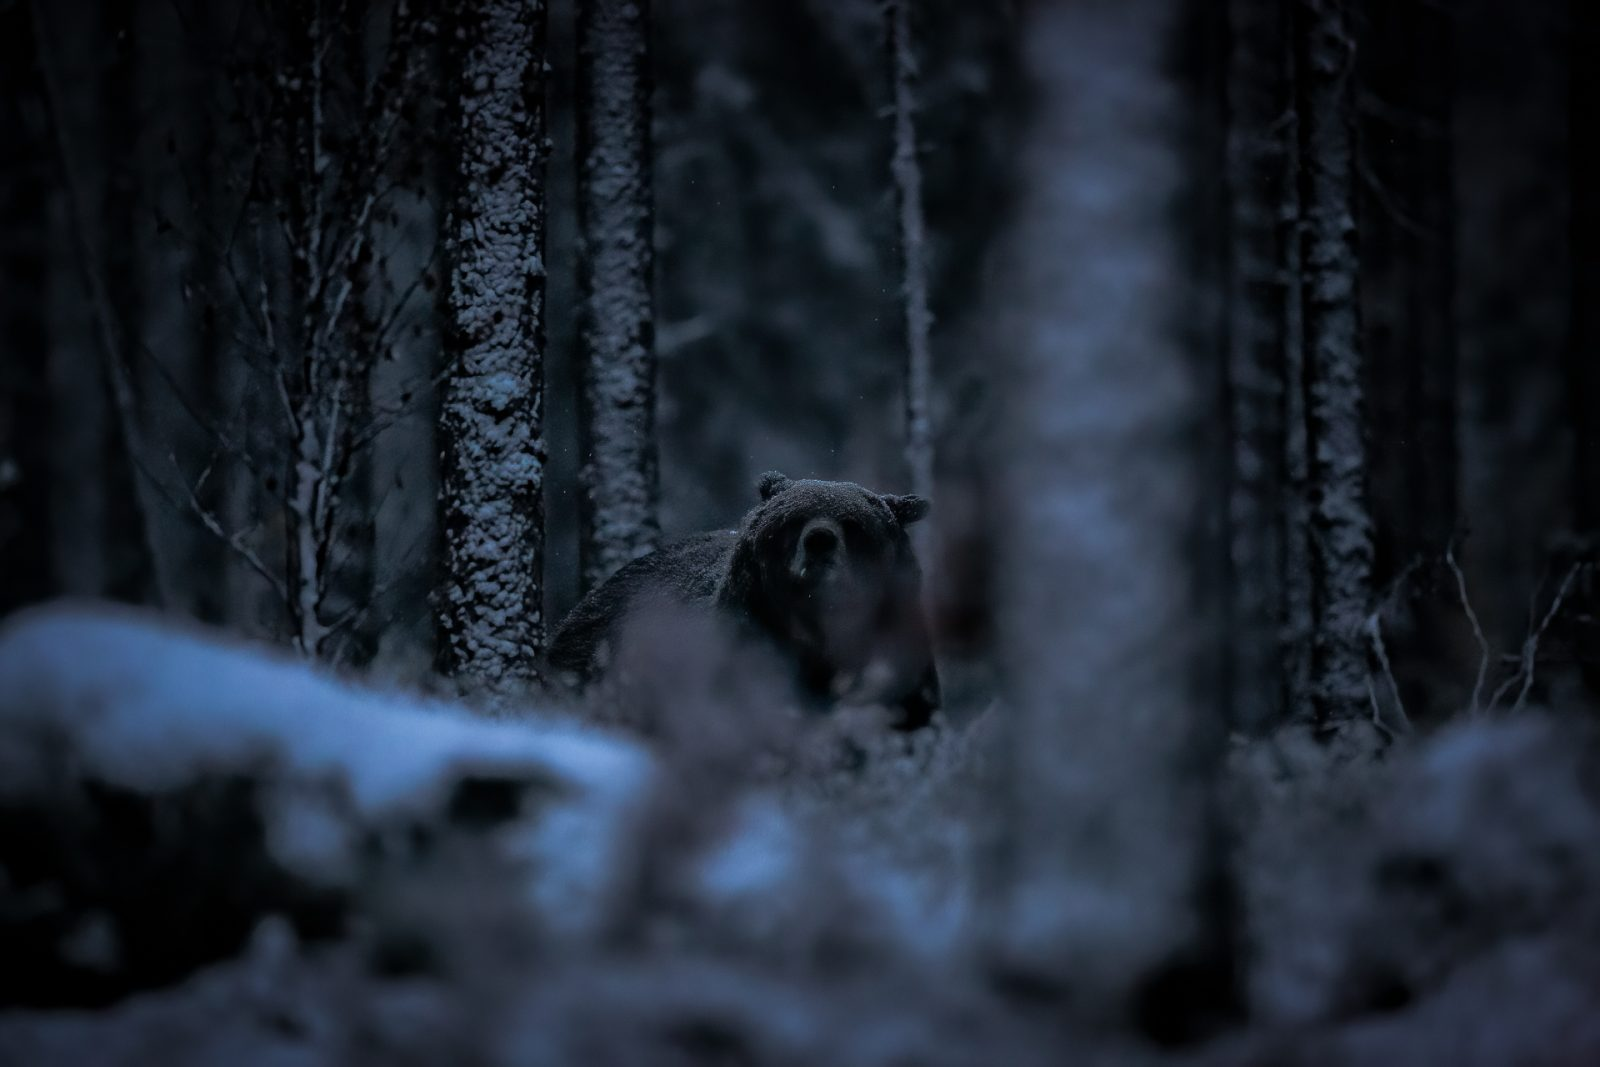 Brown Bear in a Dark Snowy Forest